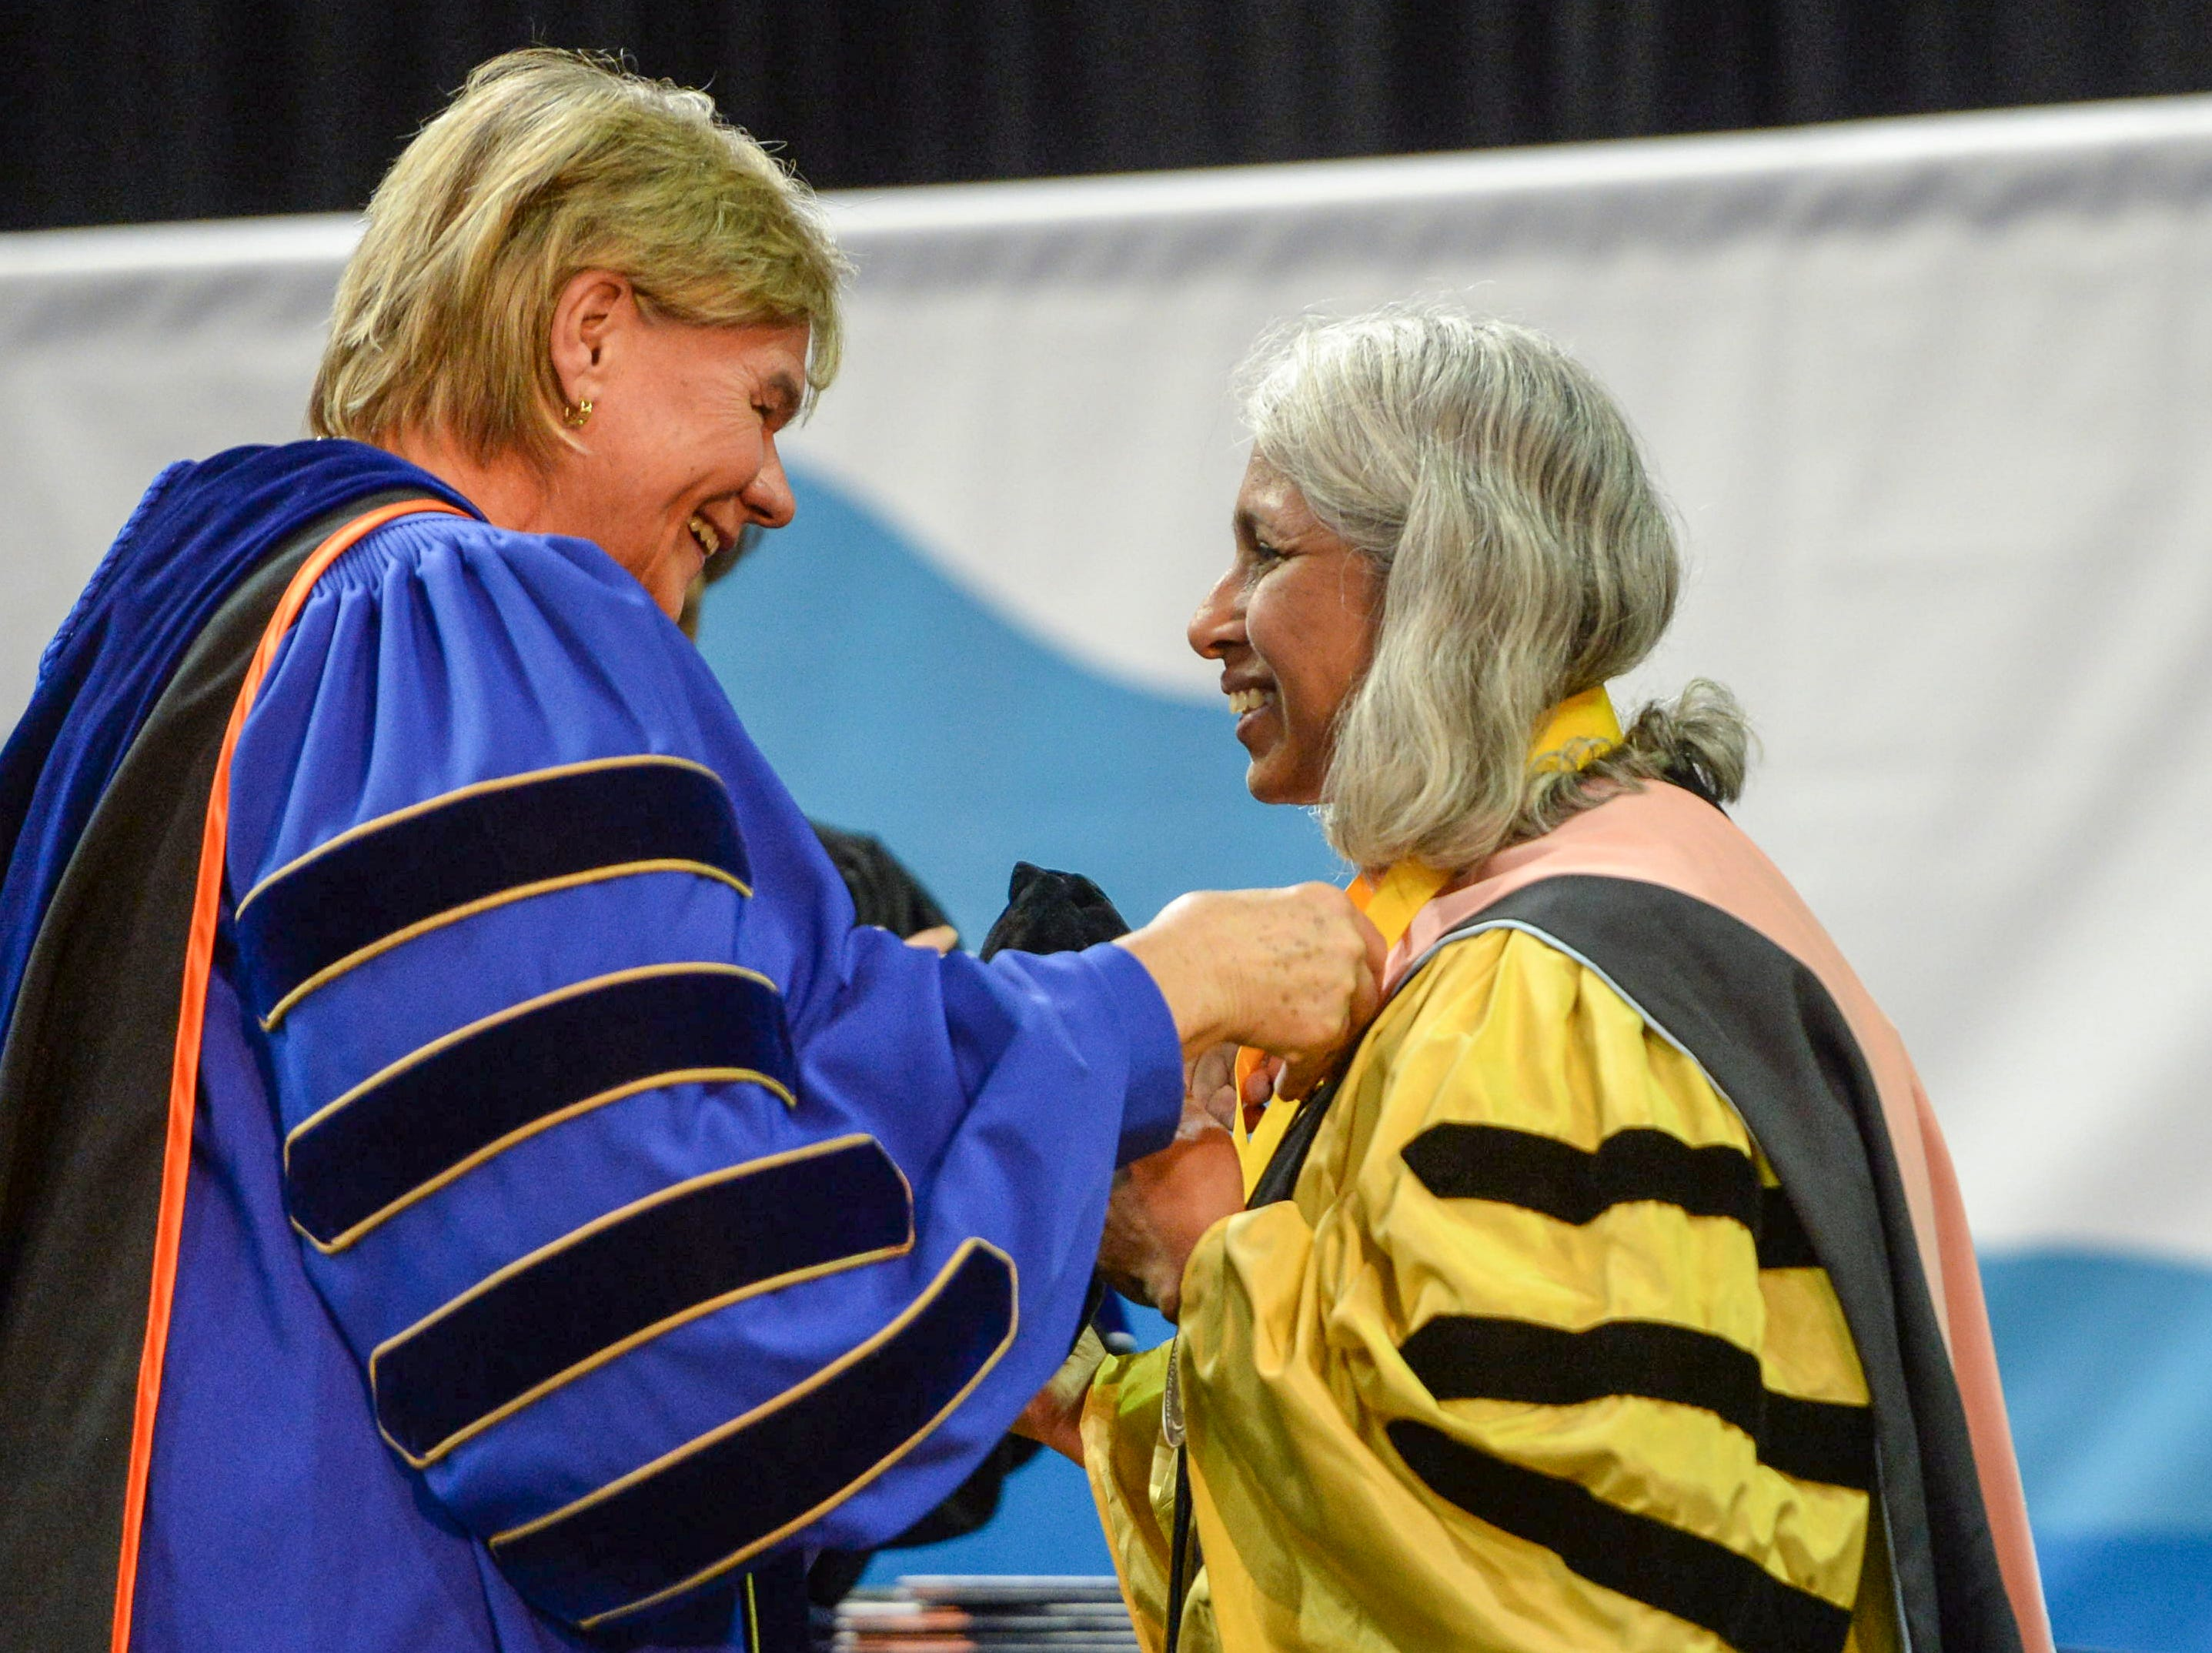 UNC Asheville held their 2019 commencement ceremony at Kimmel Arena May 11, 2019. Paula Kerger, president and CEO of PBS, was the commencement speaker.